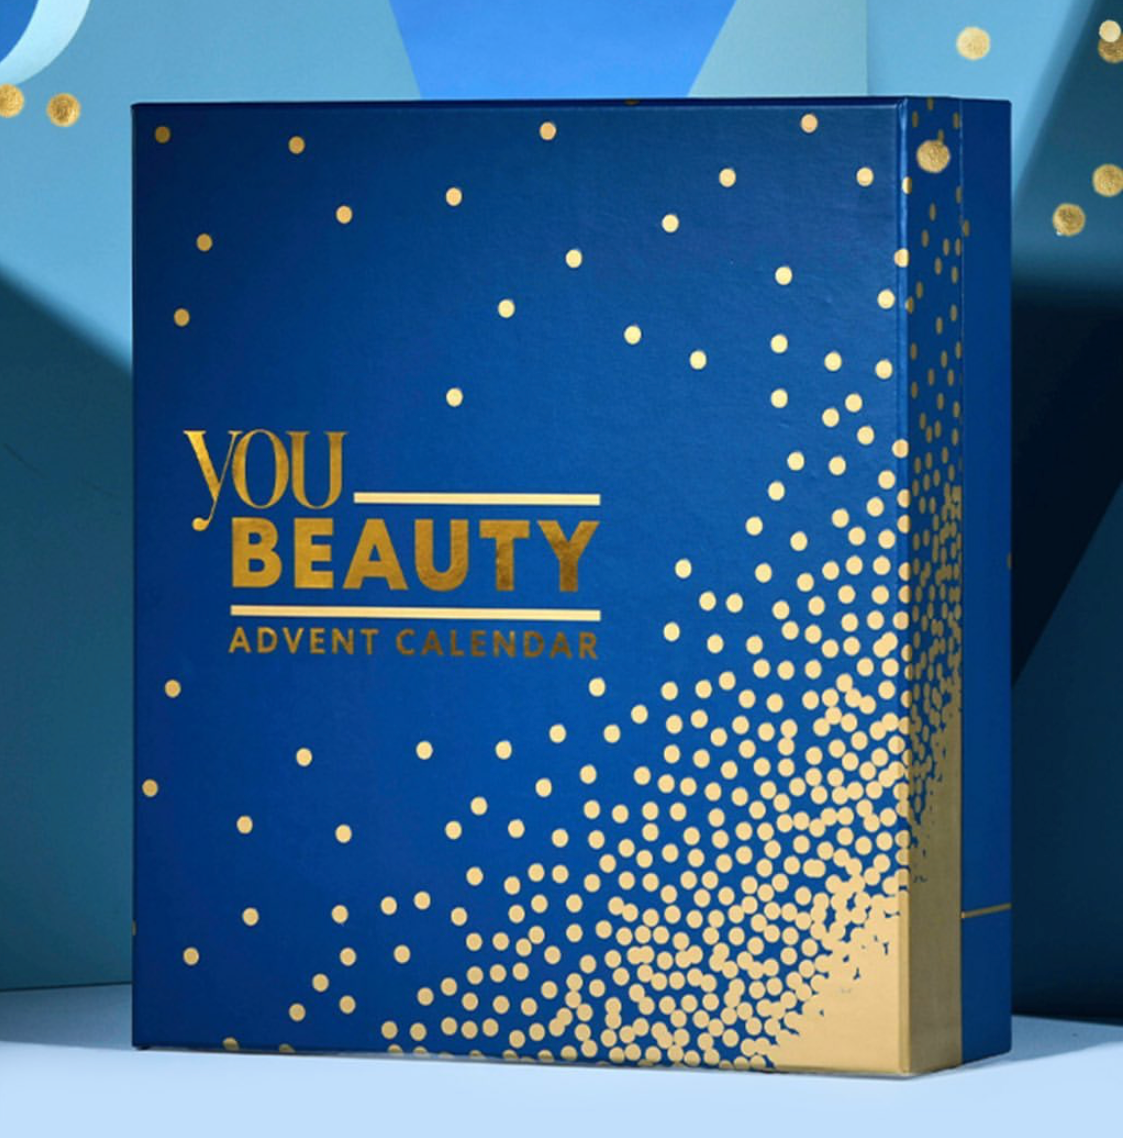 You Beauty advent calendar 2019